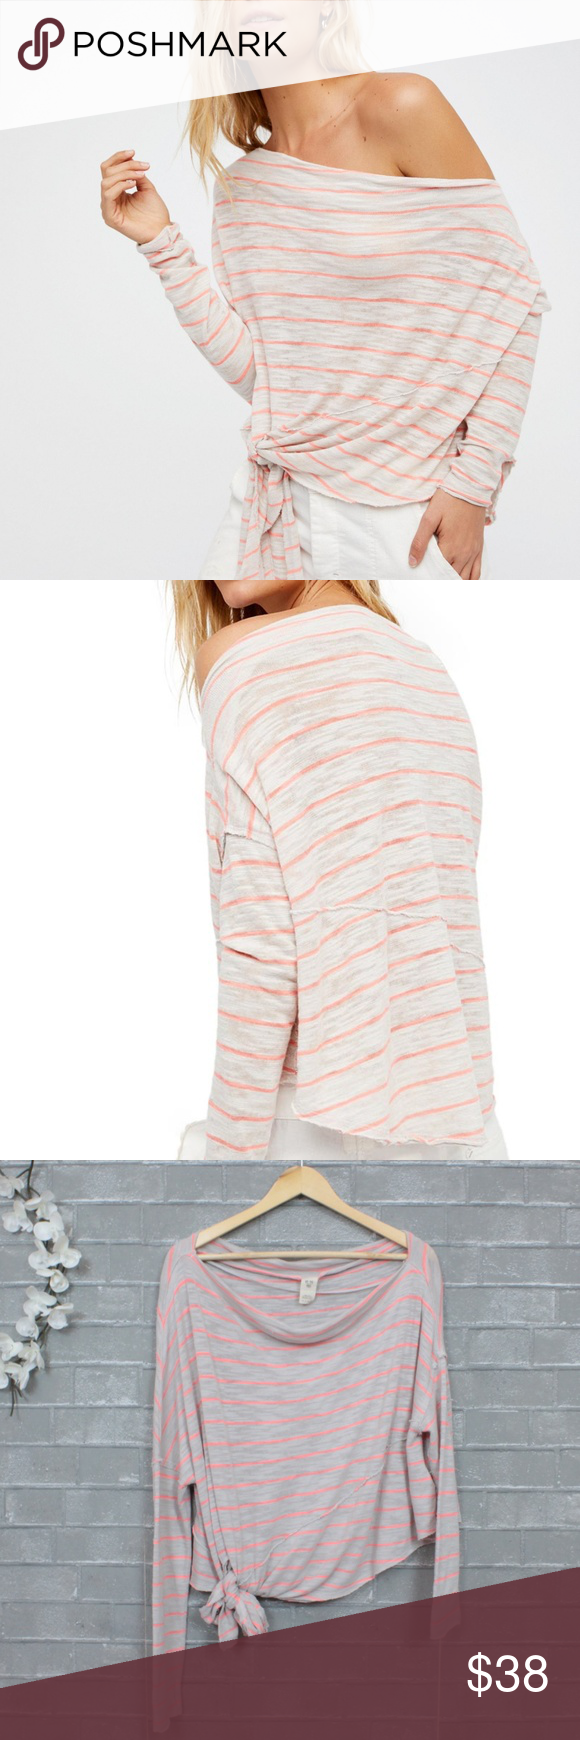 8d0cb1060d Free People Love Lane Striped Off the Shoulder Tee Love Lane Tee in  grey/orange coral stripe by We the Free. NWOT. Size L. Perfectly slouchy,  relaxed fit.